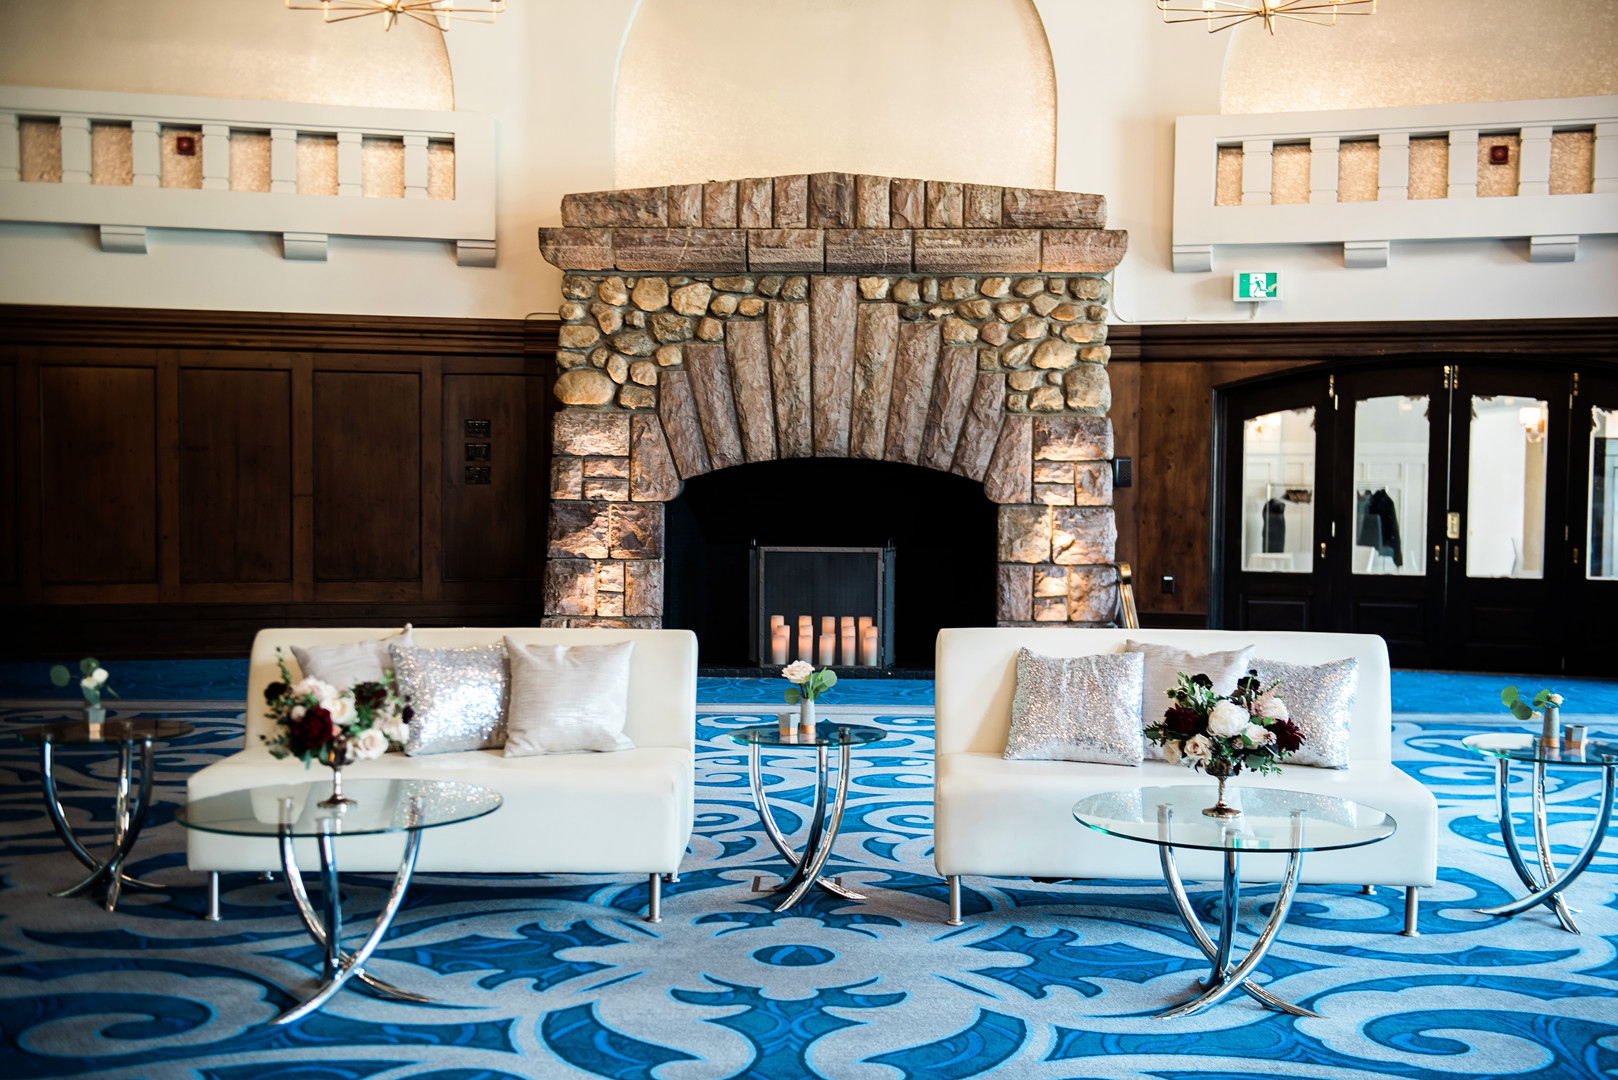 Lounge seating at Lake Louise photographed for Mountain Bride Events